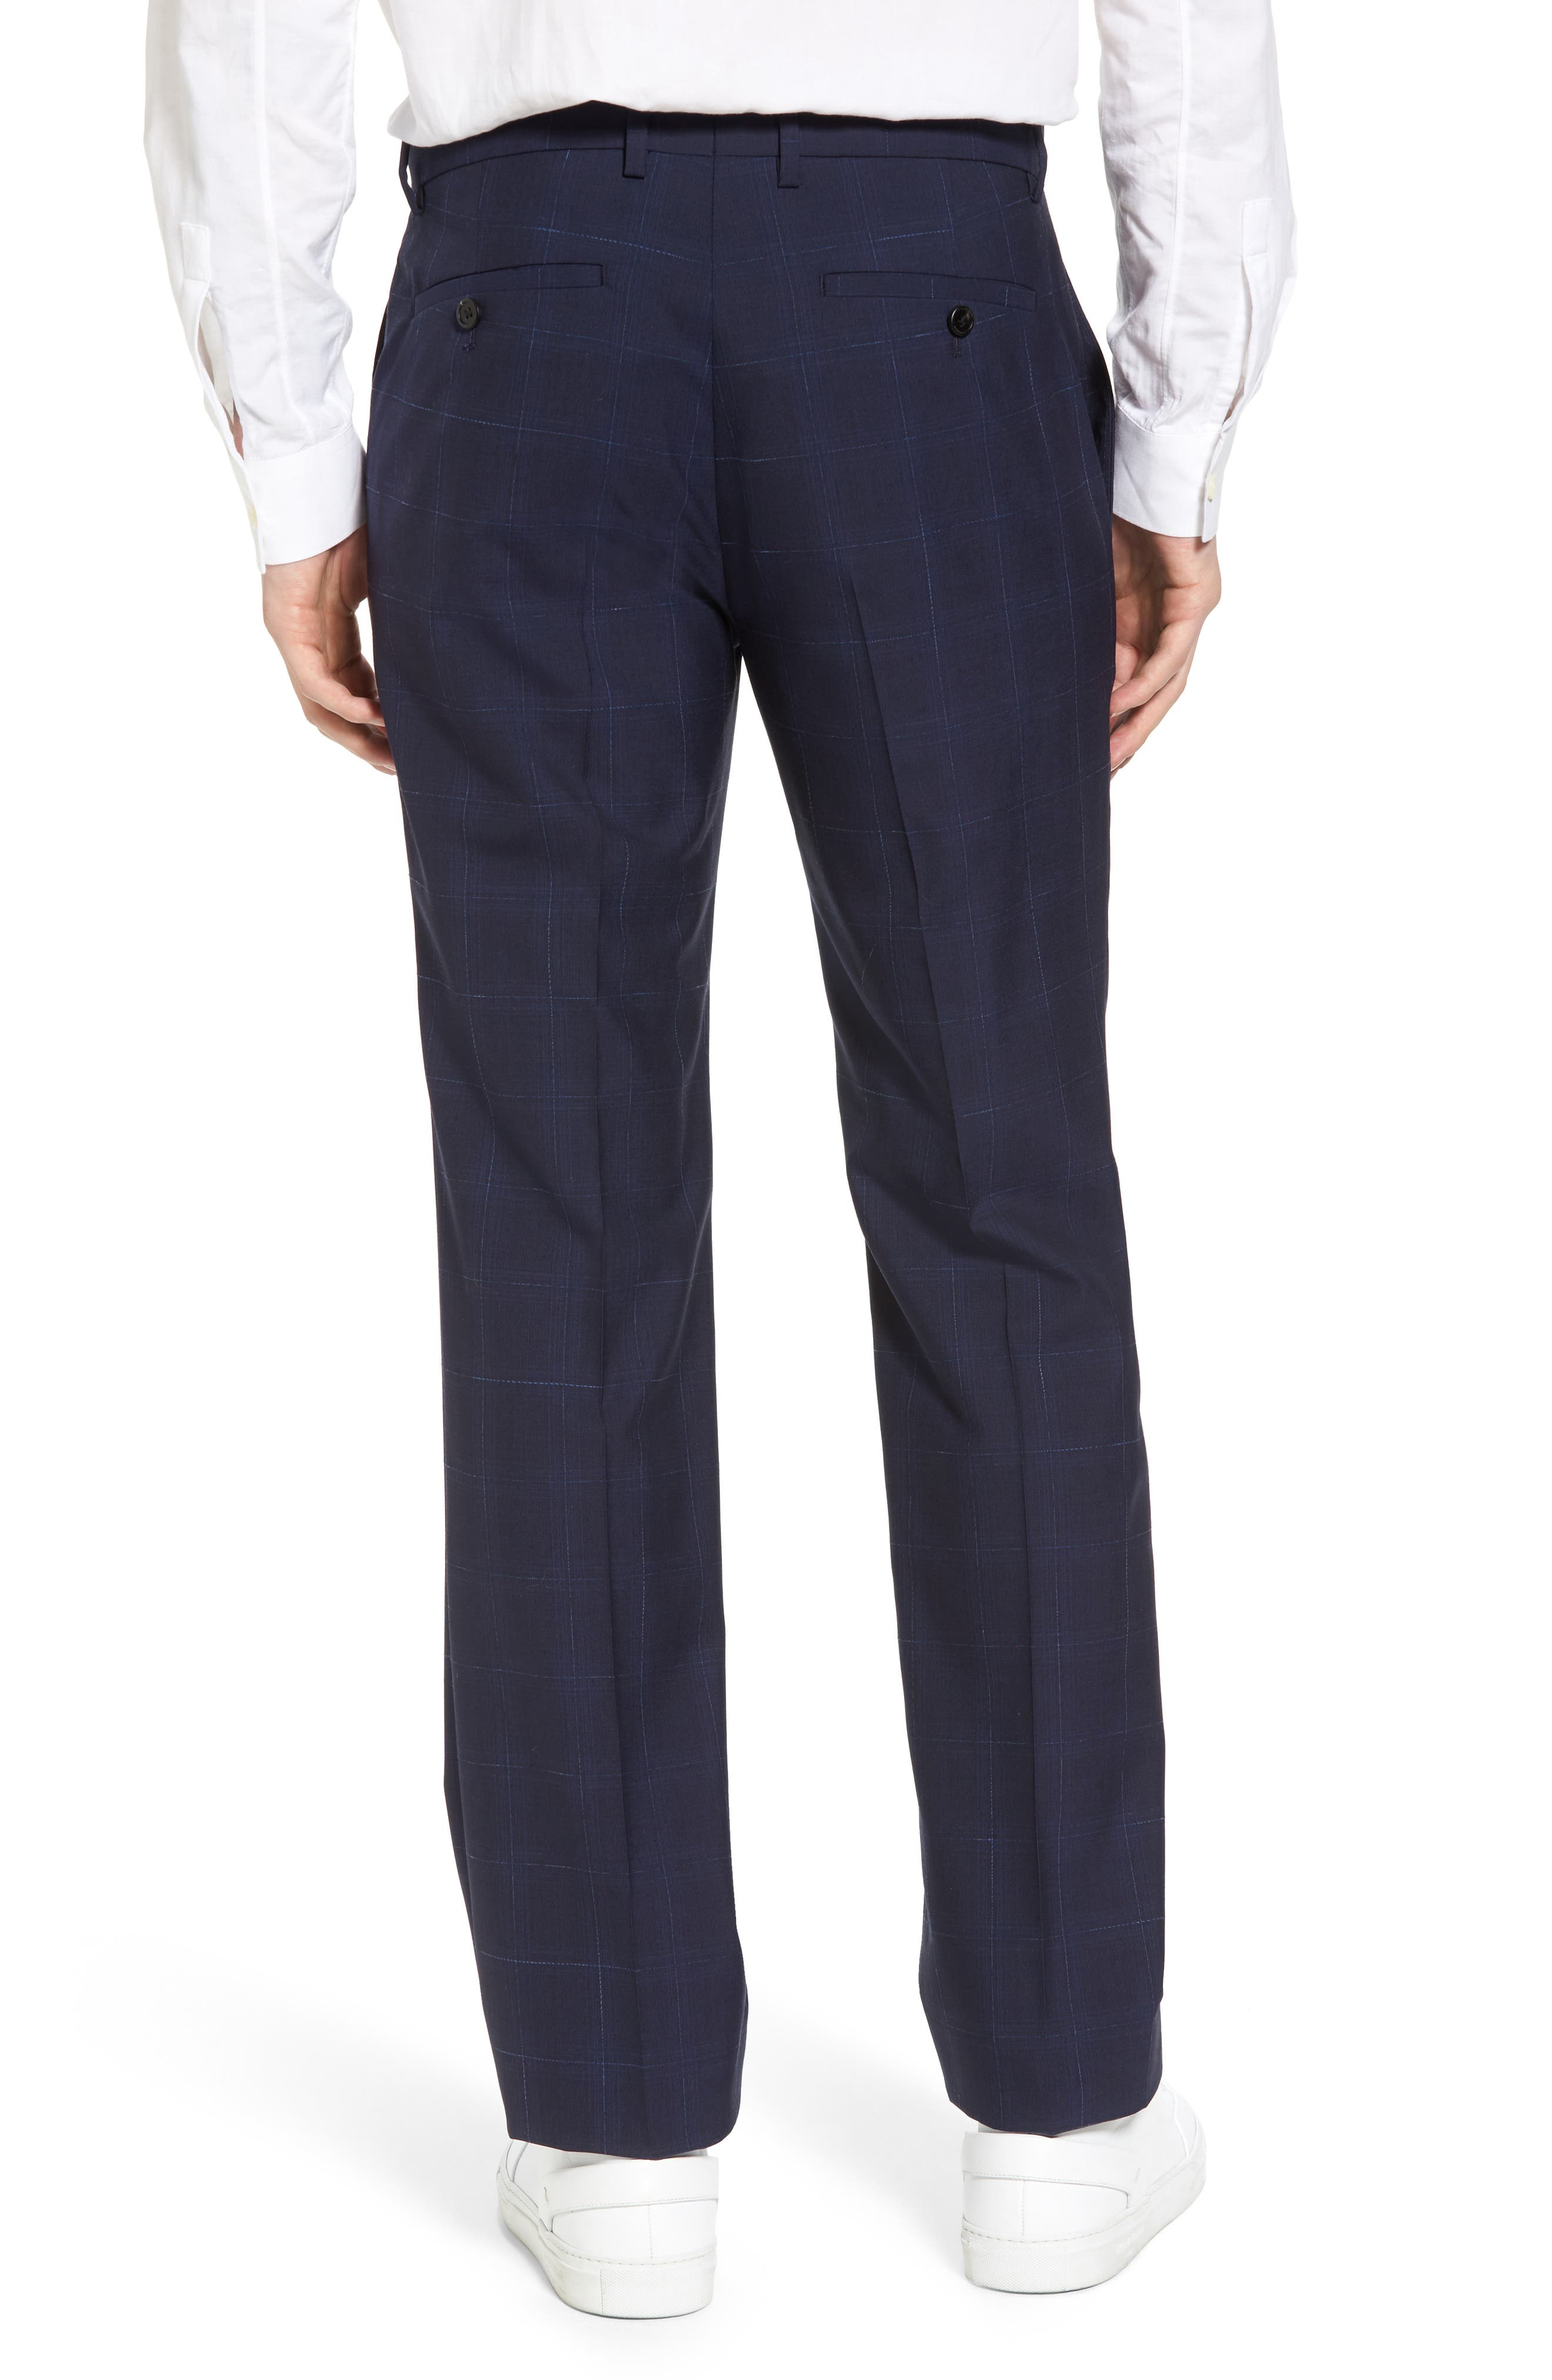 Marlo Flat Front Plaid Wool Trousers,                             Alternate thumbnail 2, color,                             Eclipse